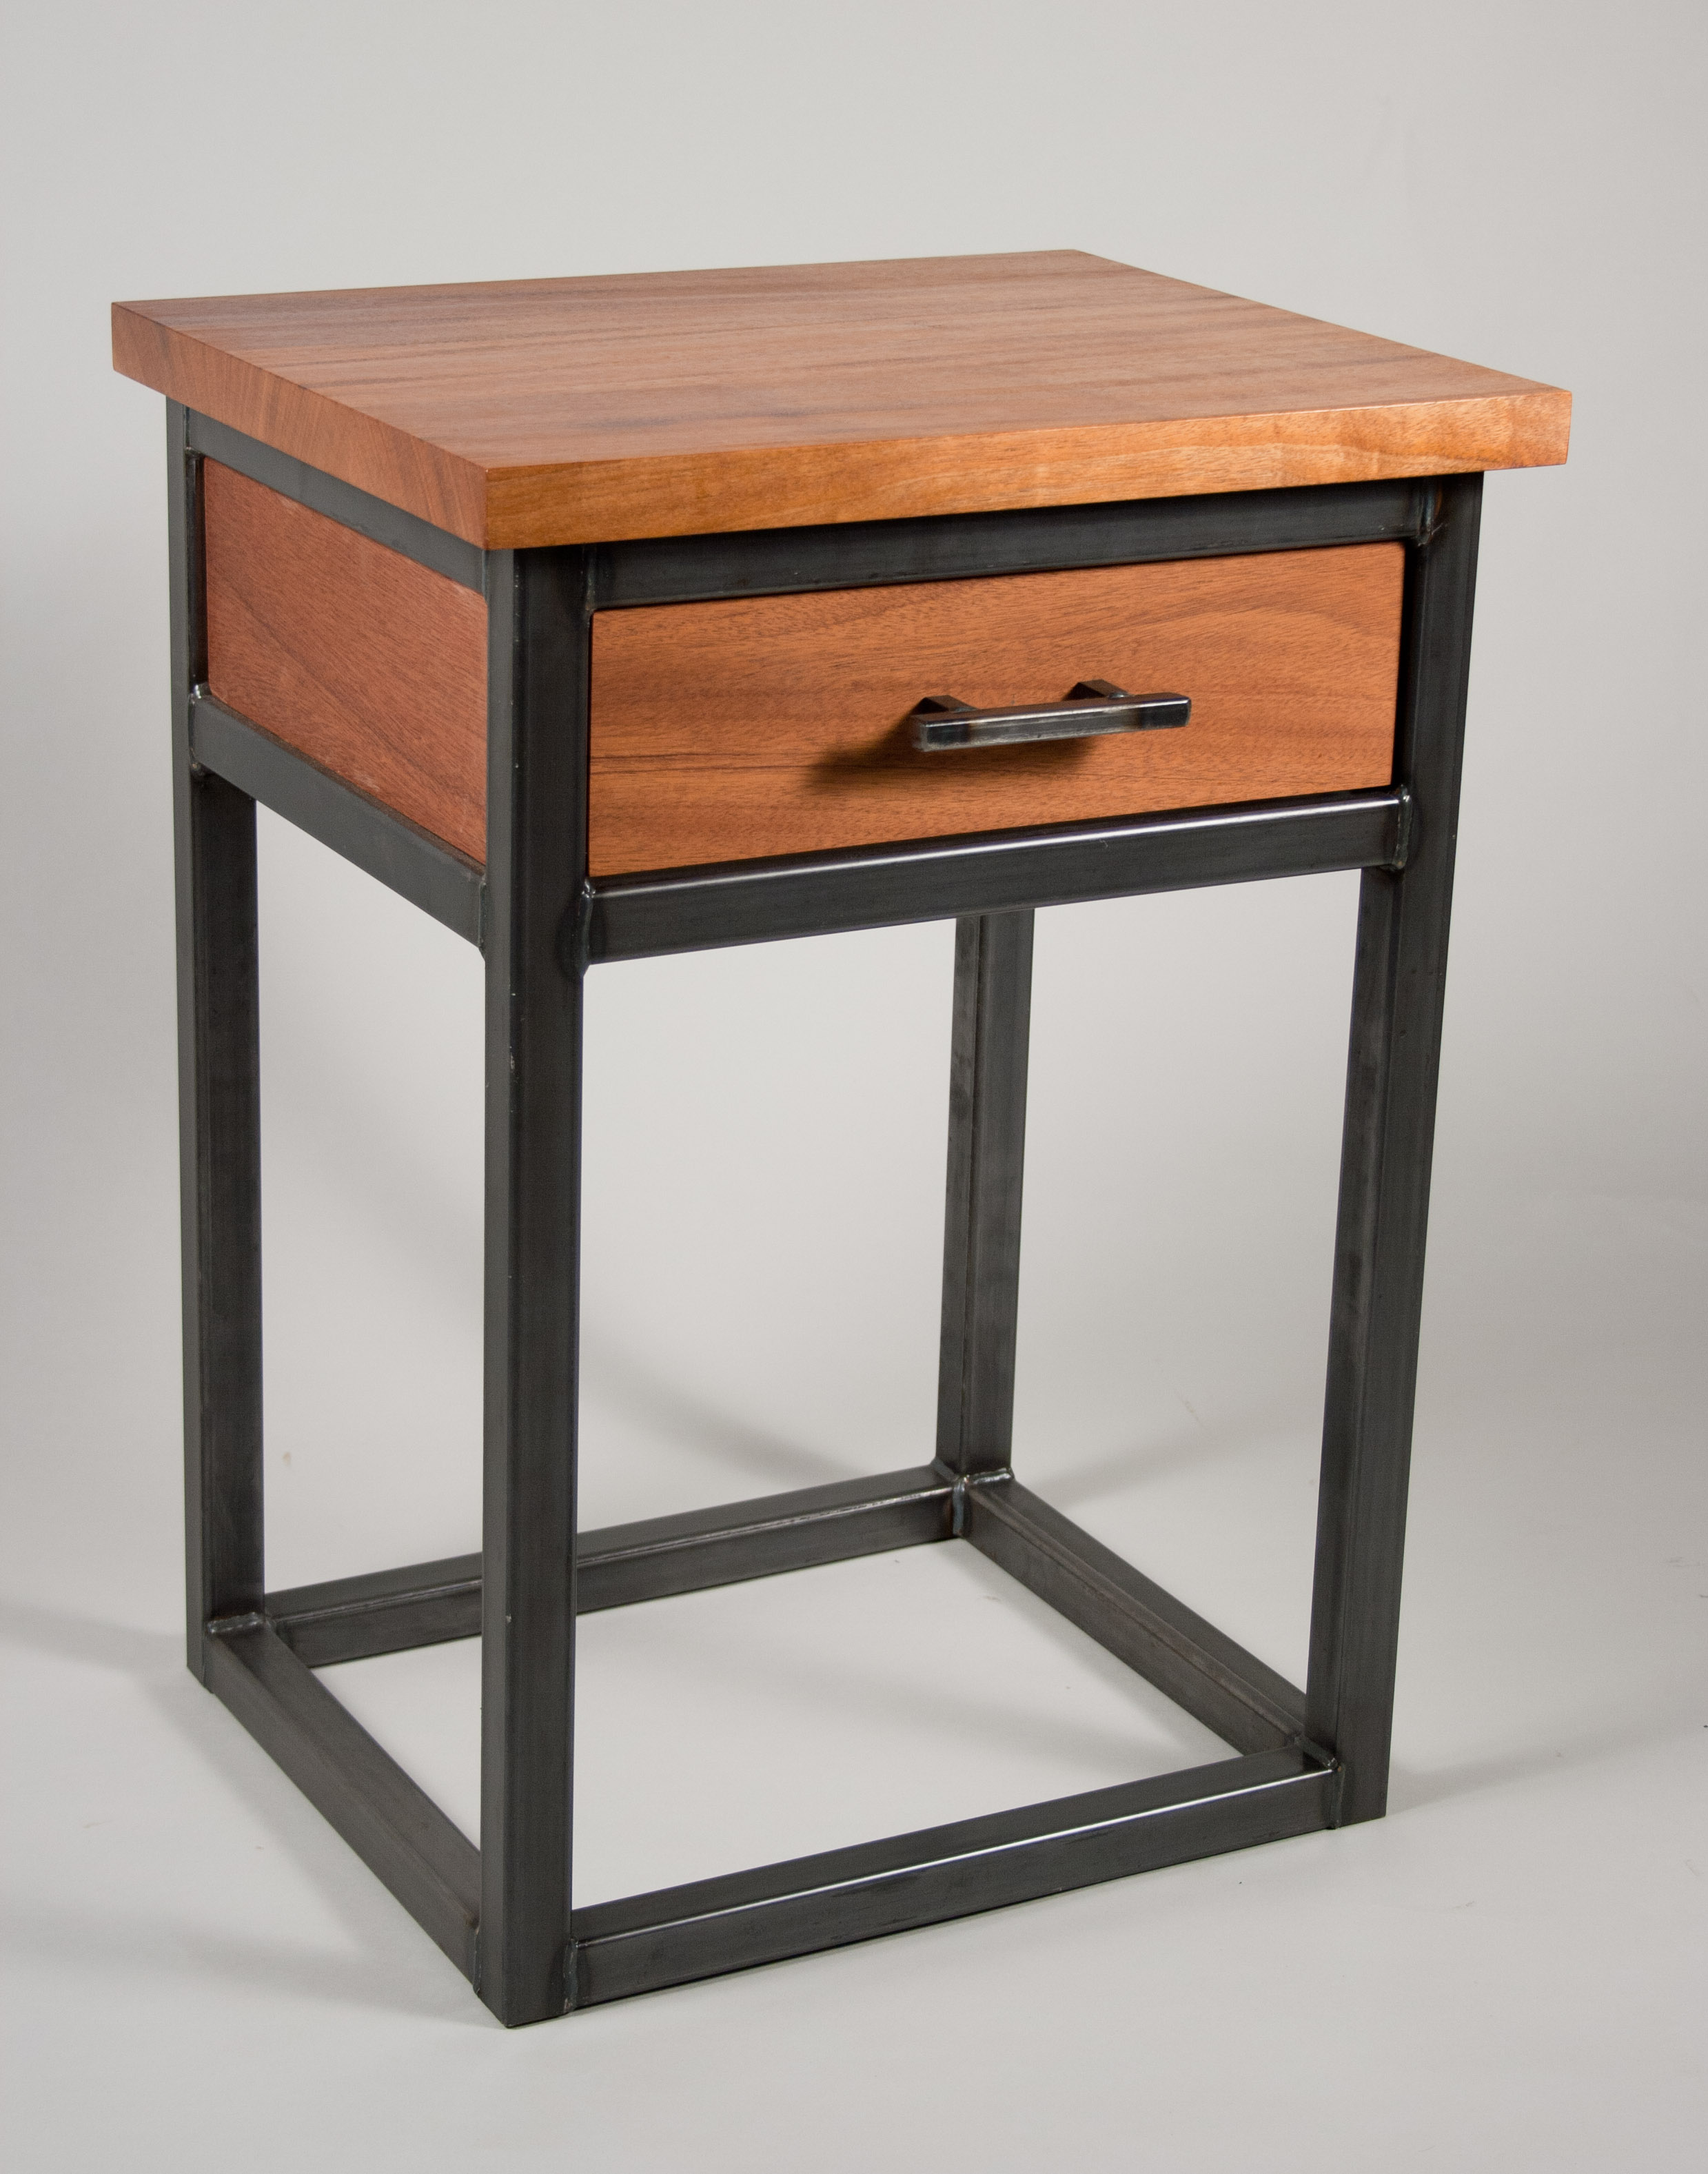 Bedside Table Trevor Thurow Furniture Design